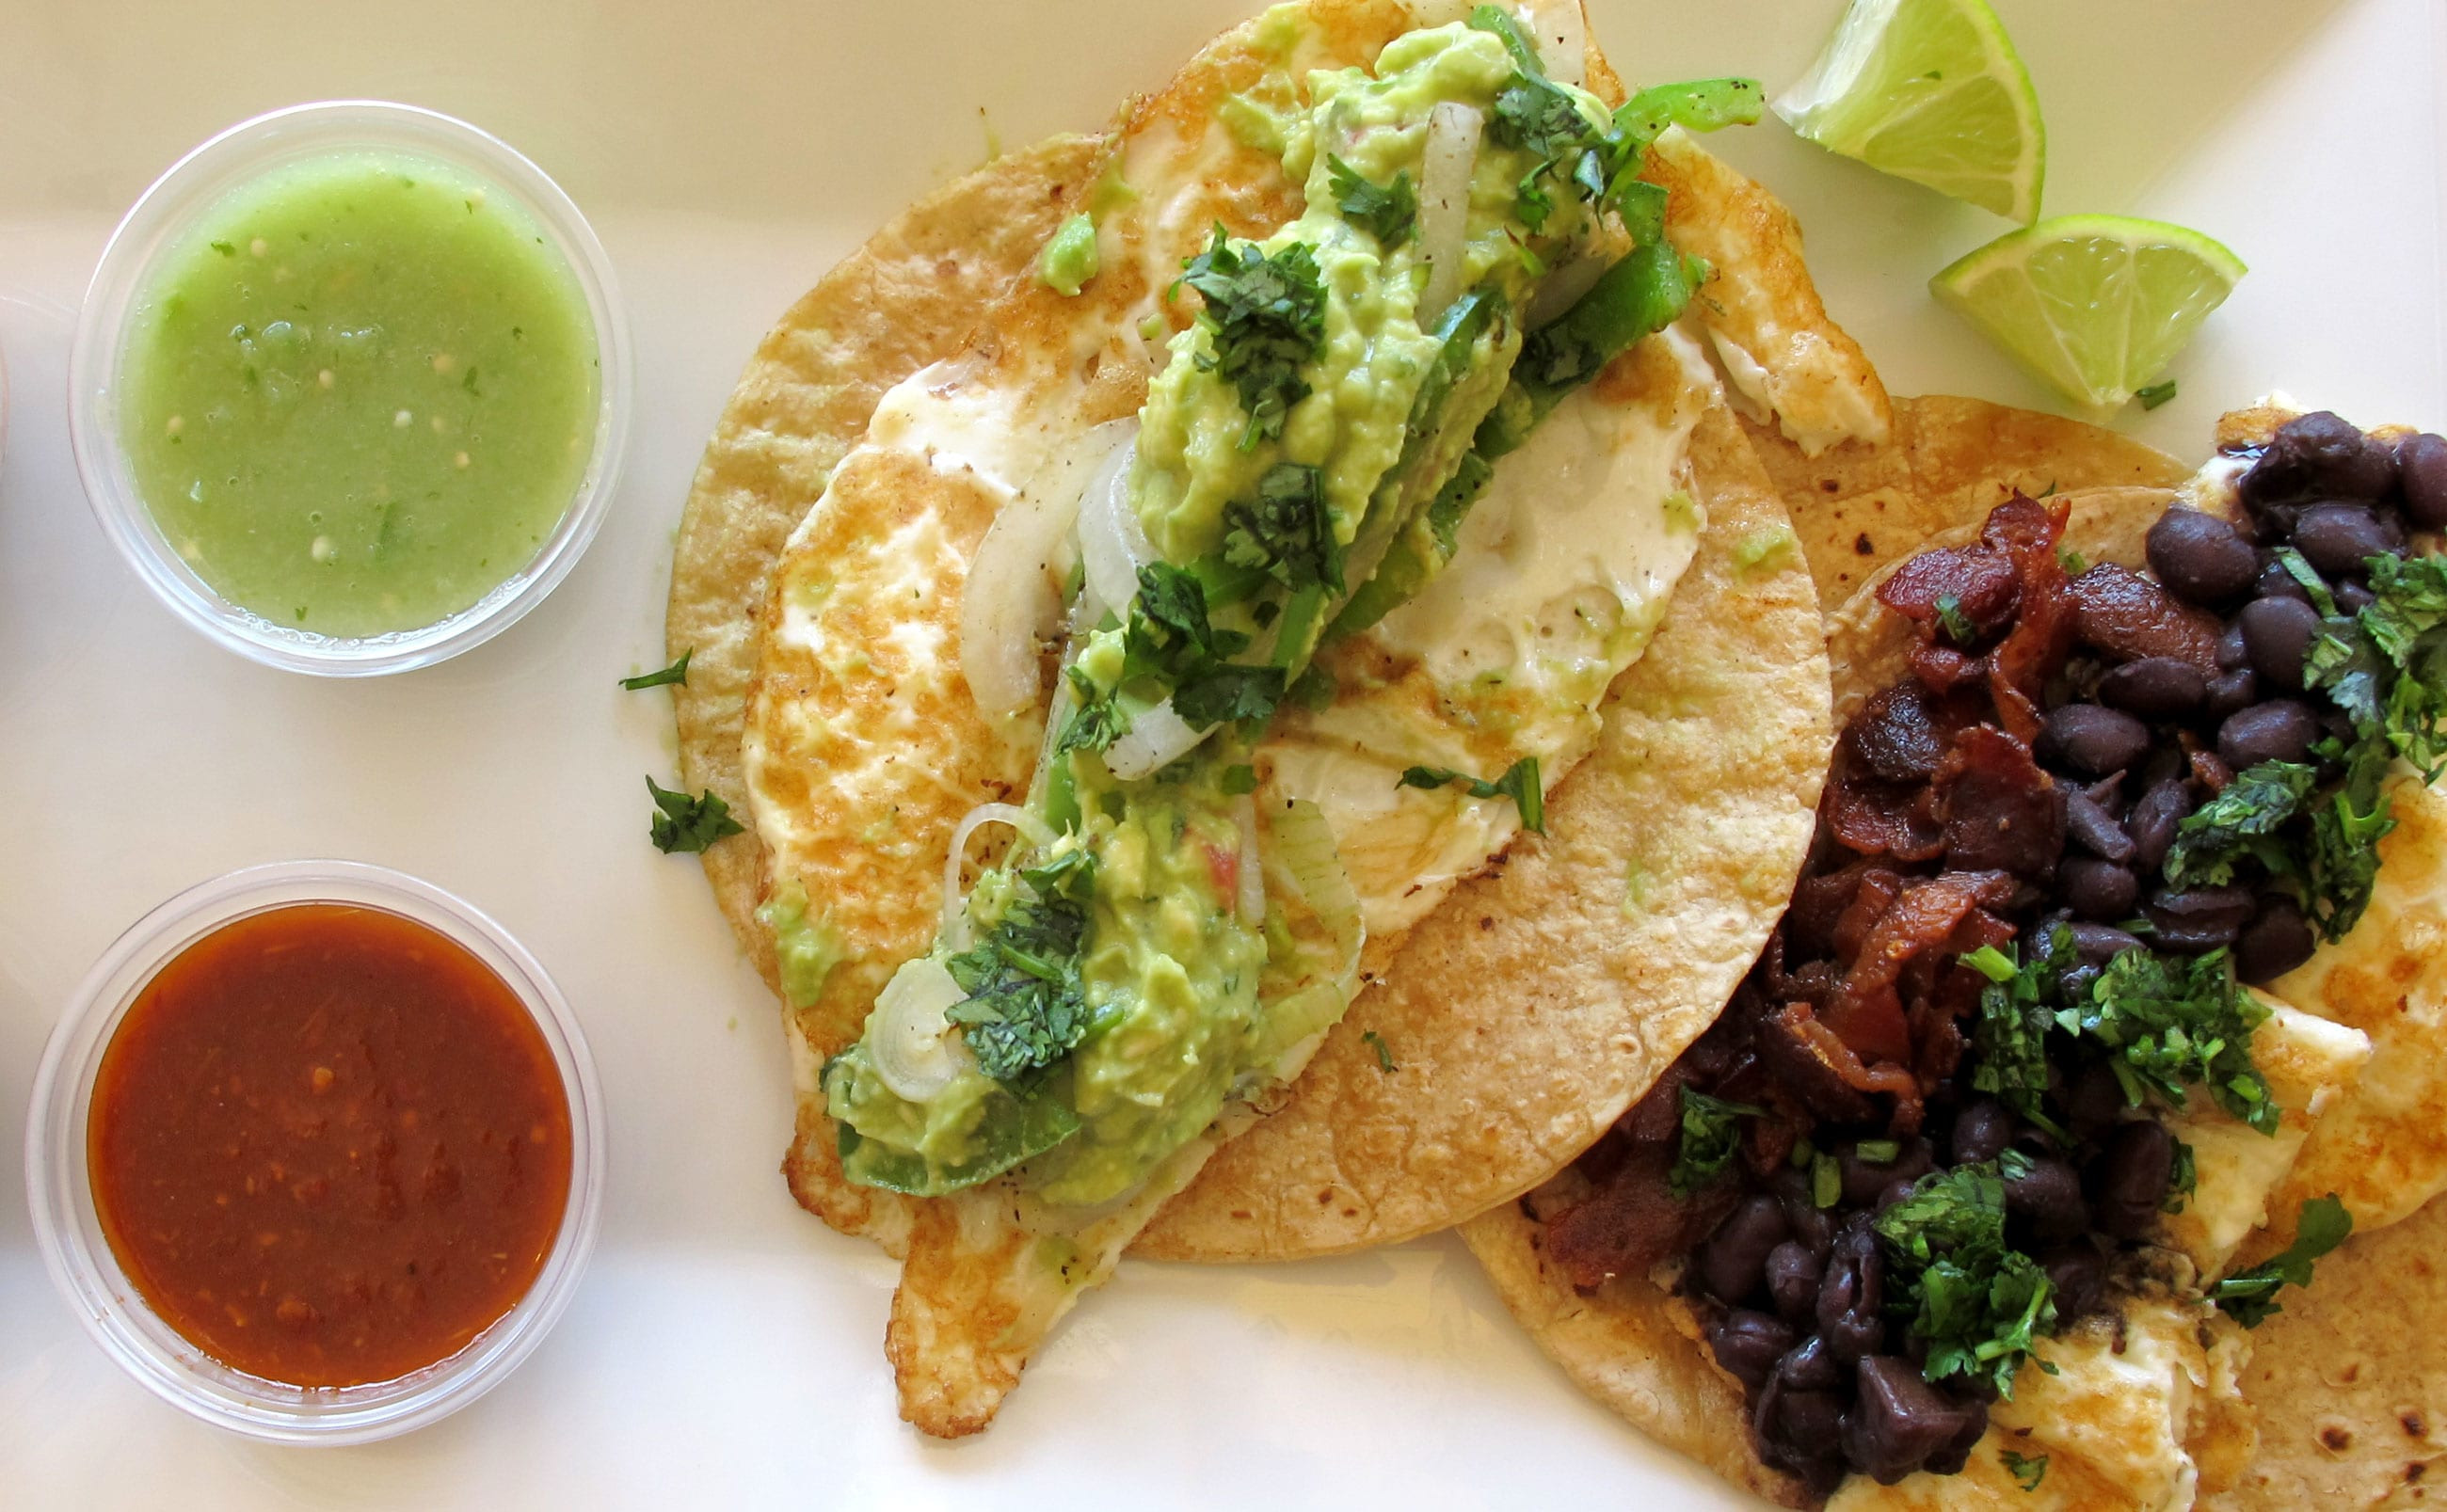 Healthy Breakfast Tacos  40 Eats D C 's most essential dishes of 2015